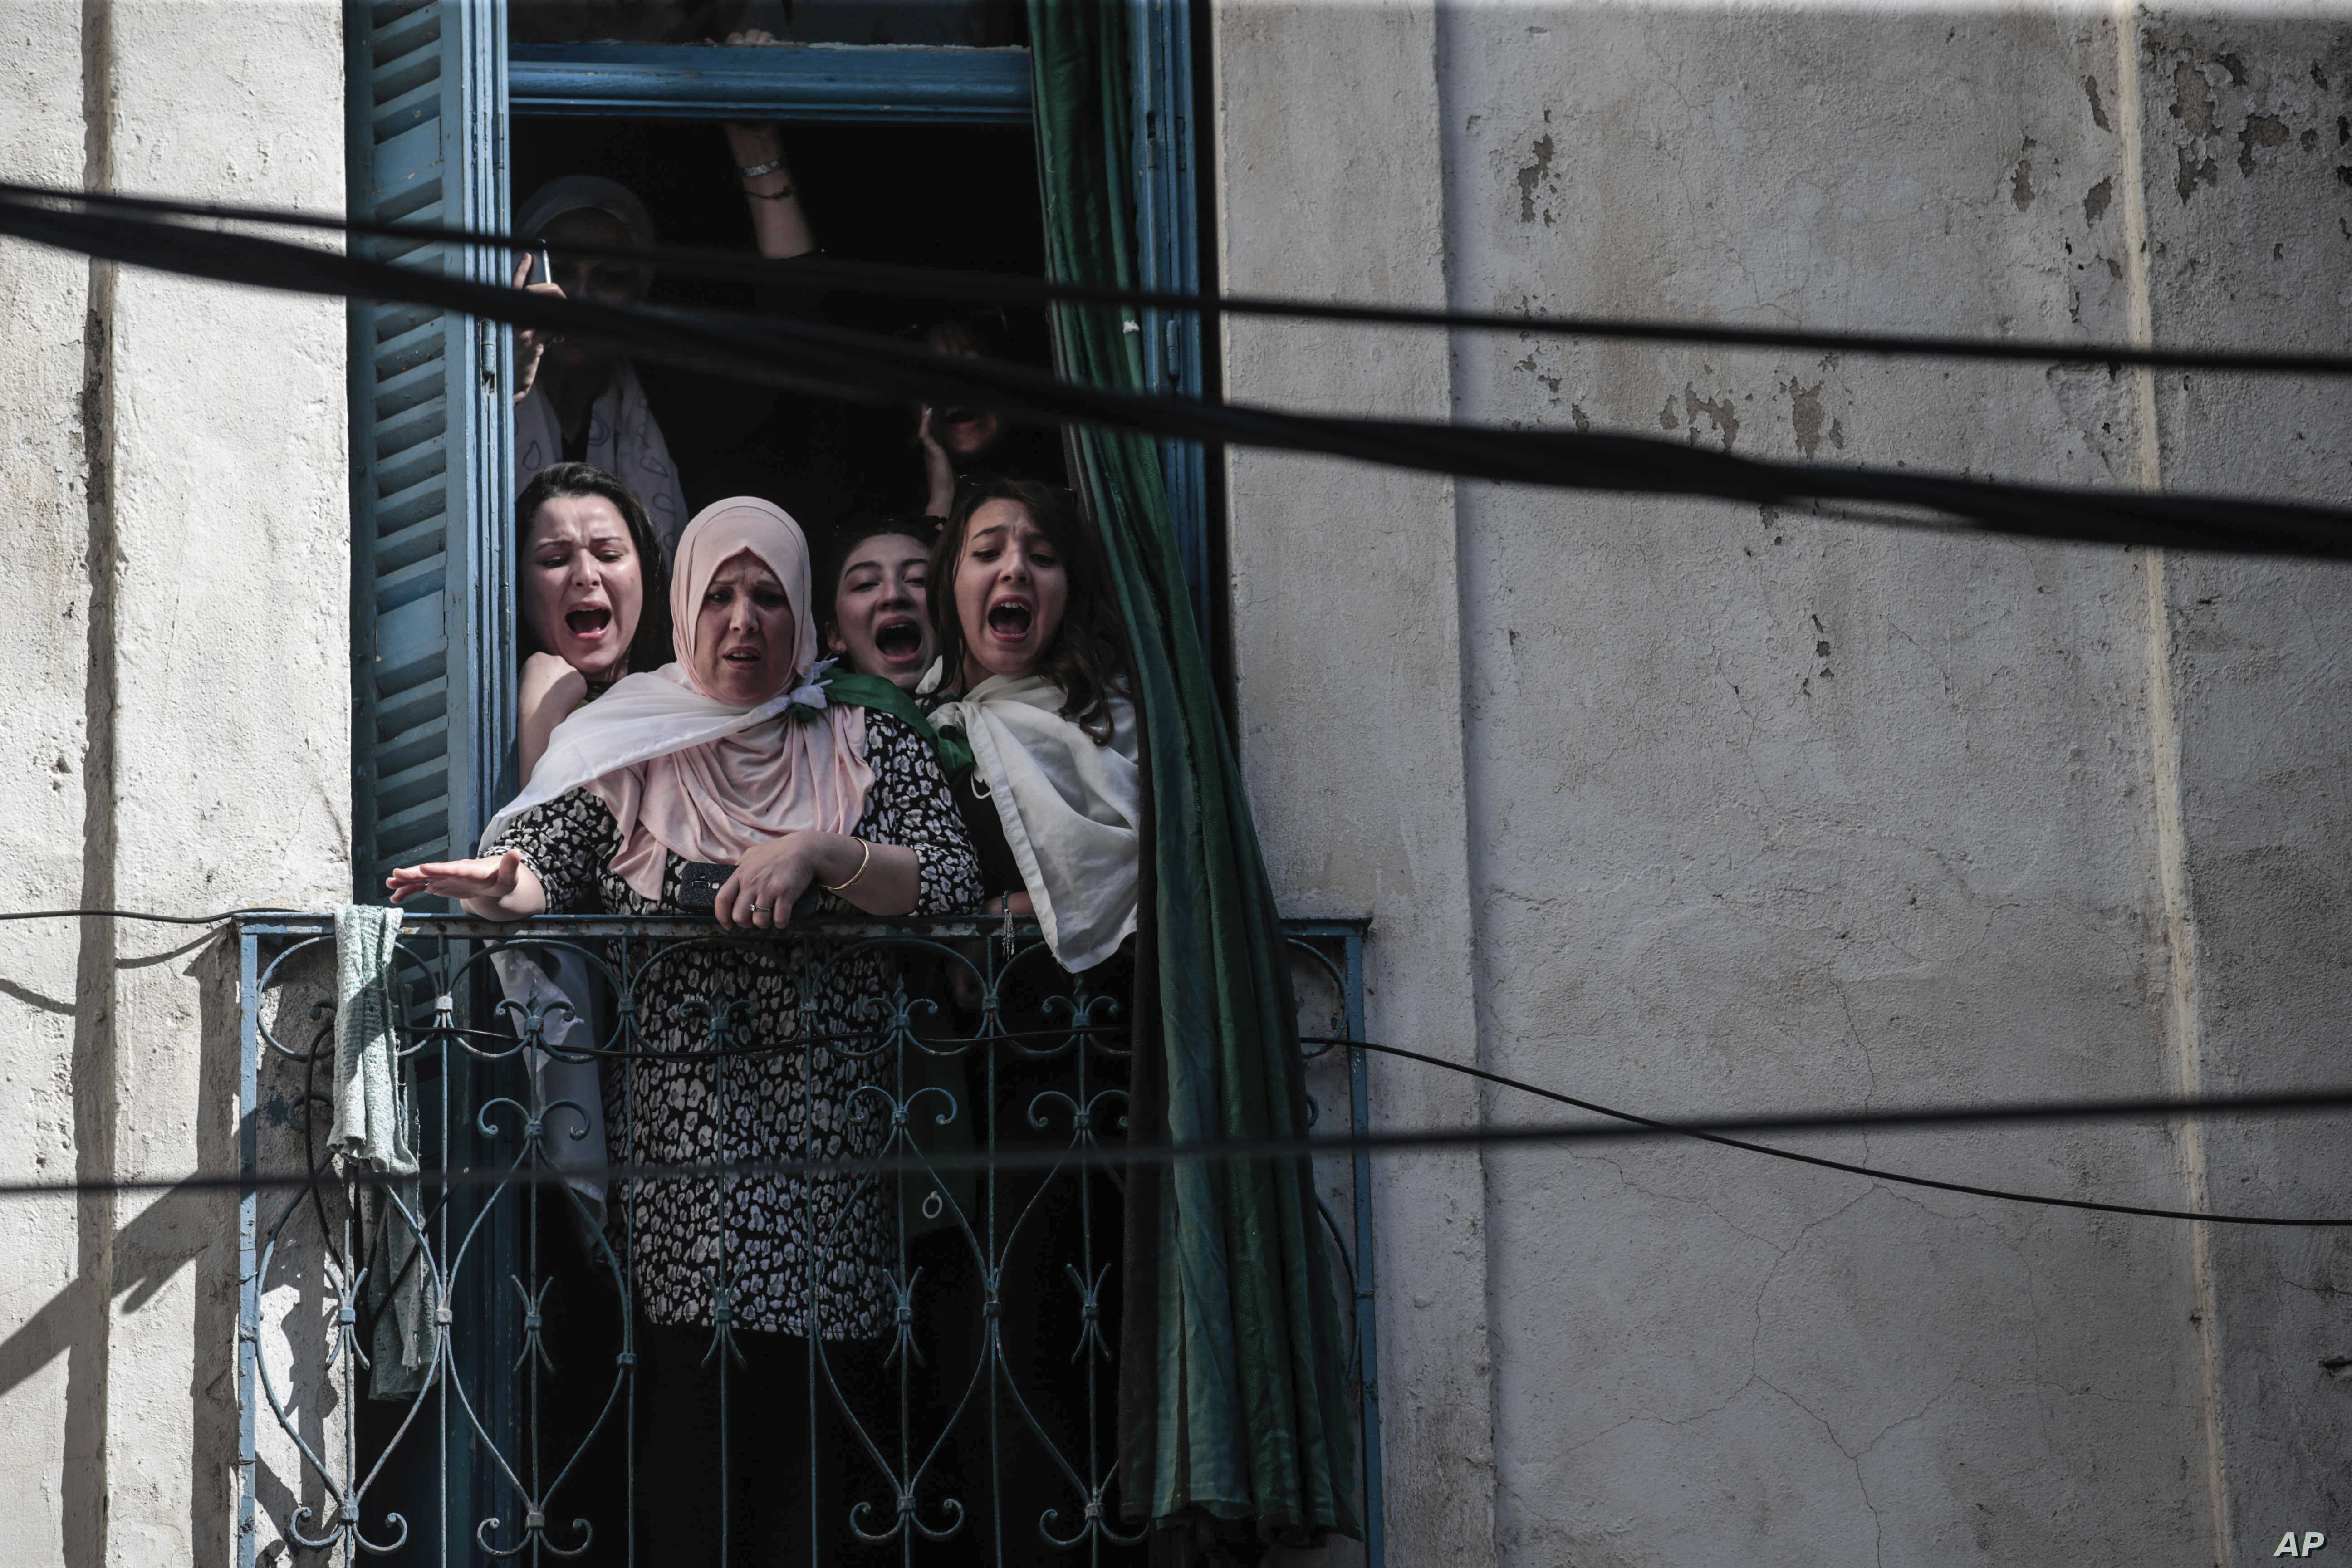 Women react from their balconies as police clash with protesters during a demonstration against the country's leadership, in Algiers,  April 12, 2019.